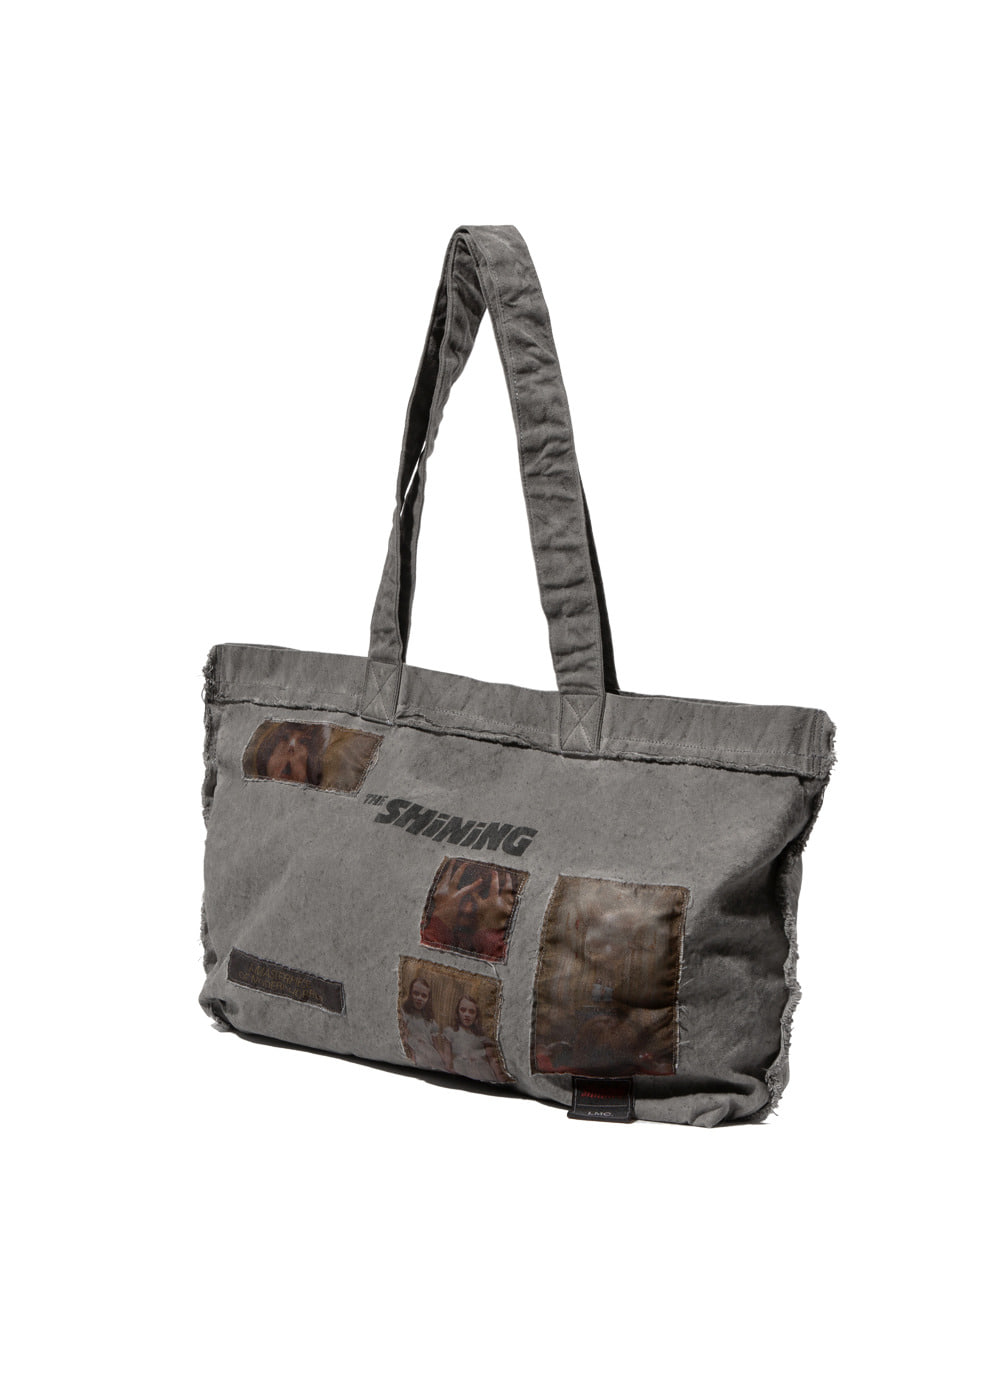 LMC│THE SHINING OVERDYED APPLIQUE LARGE TOTE BAG dark gray